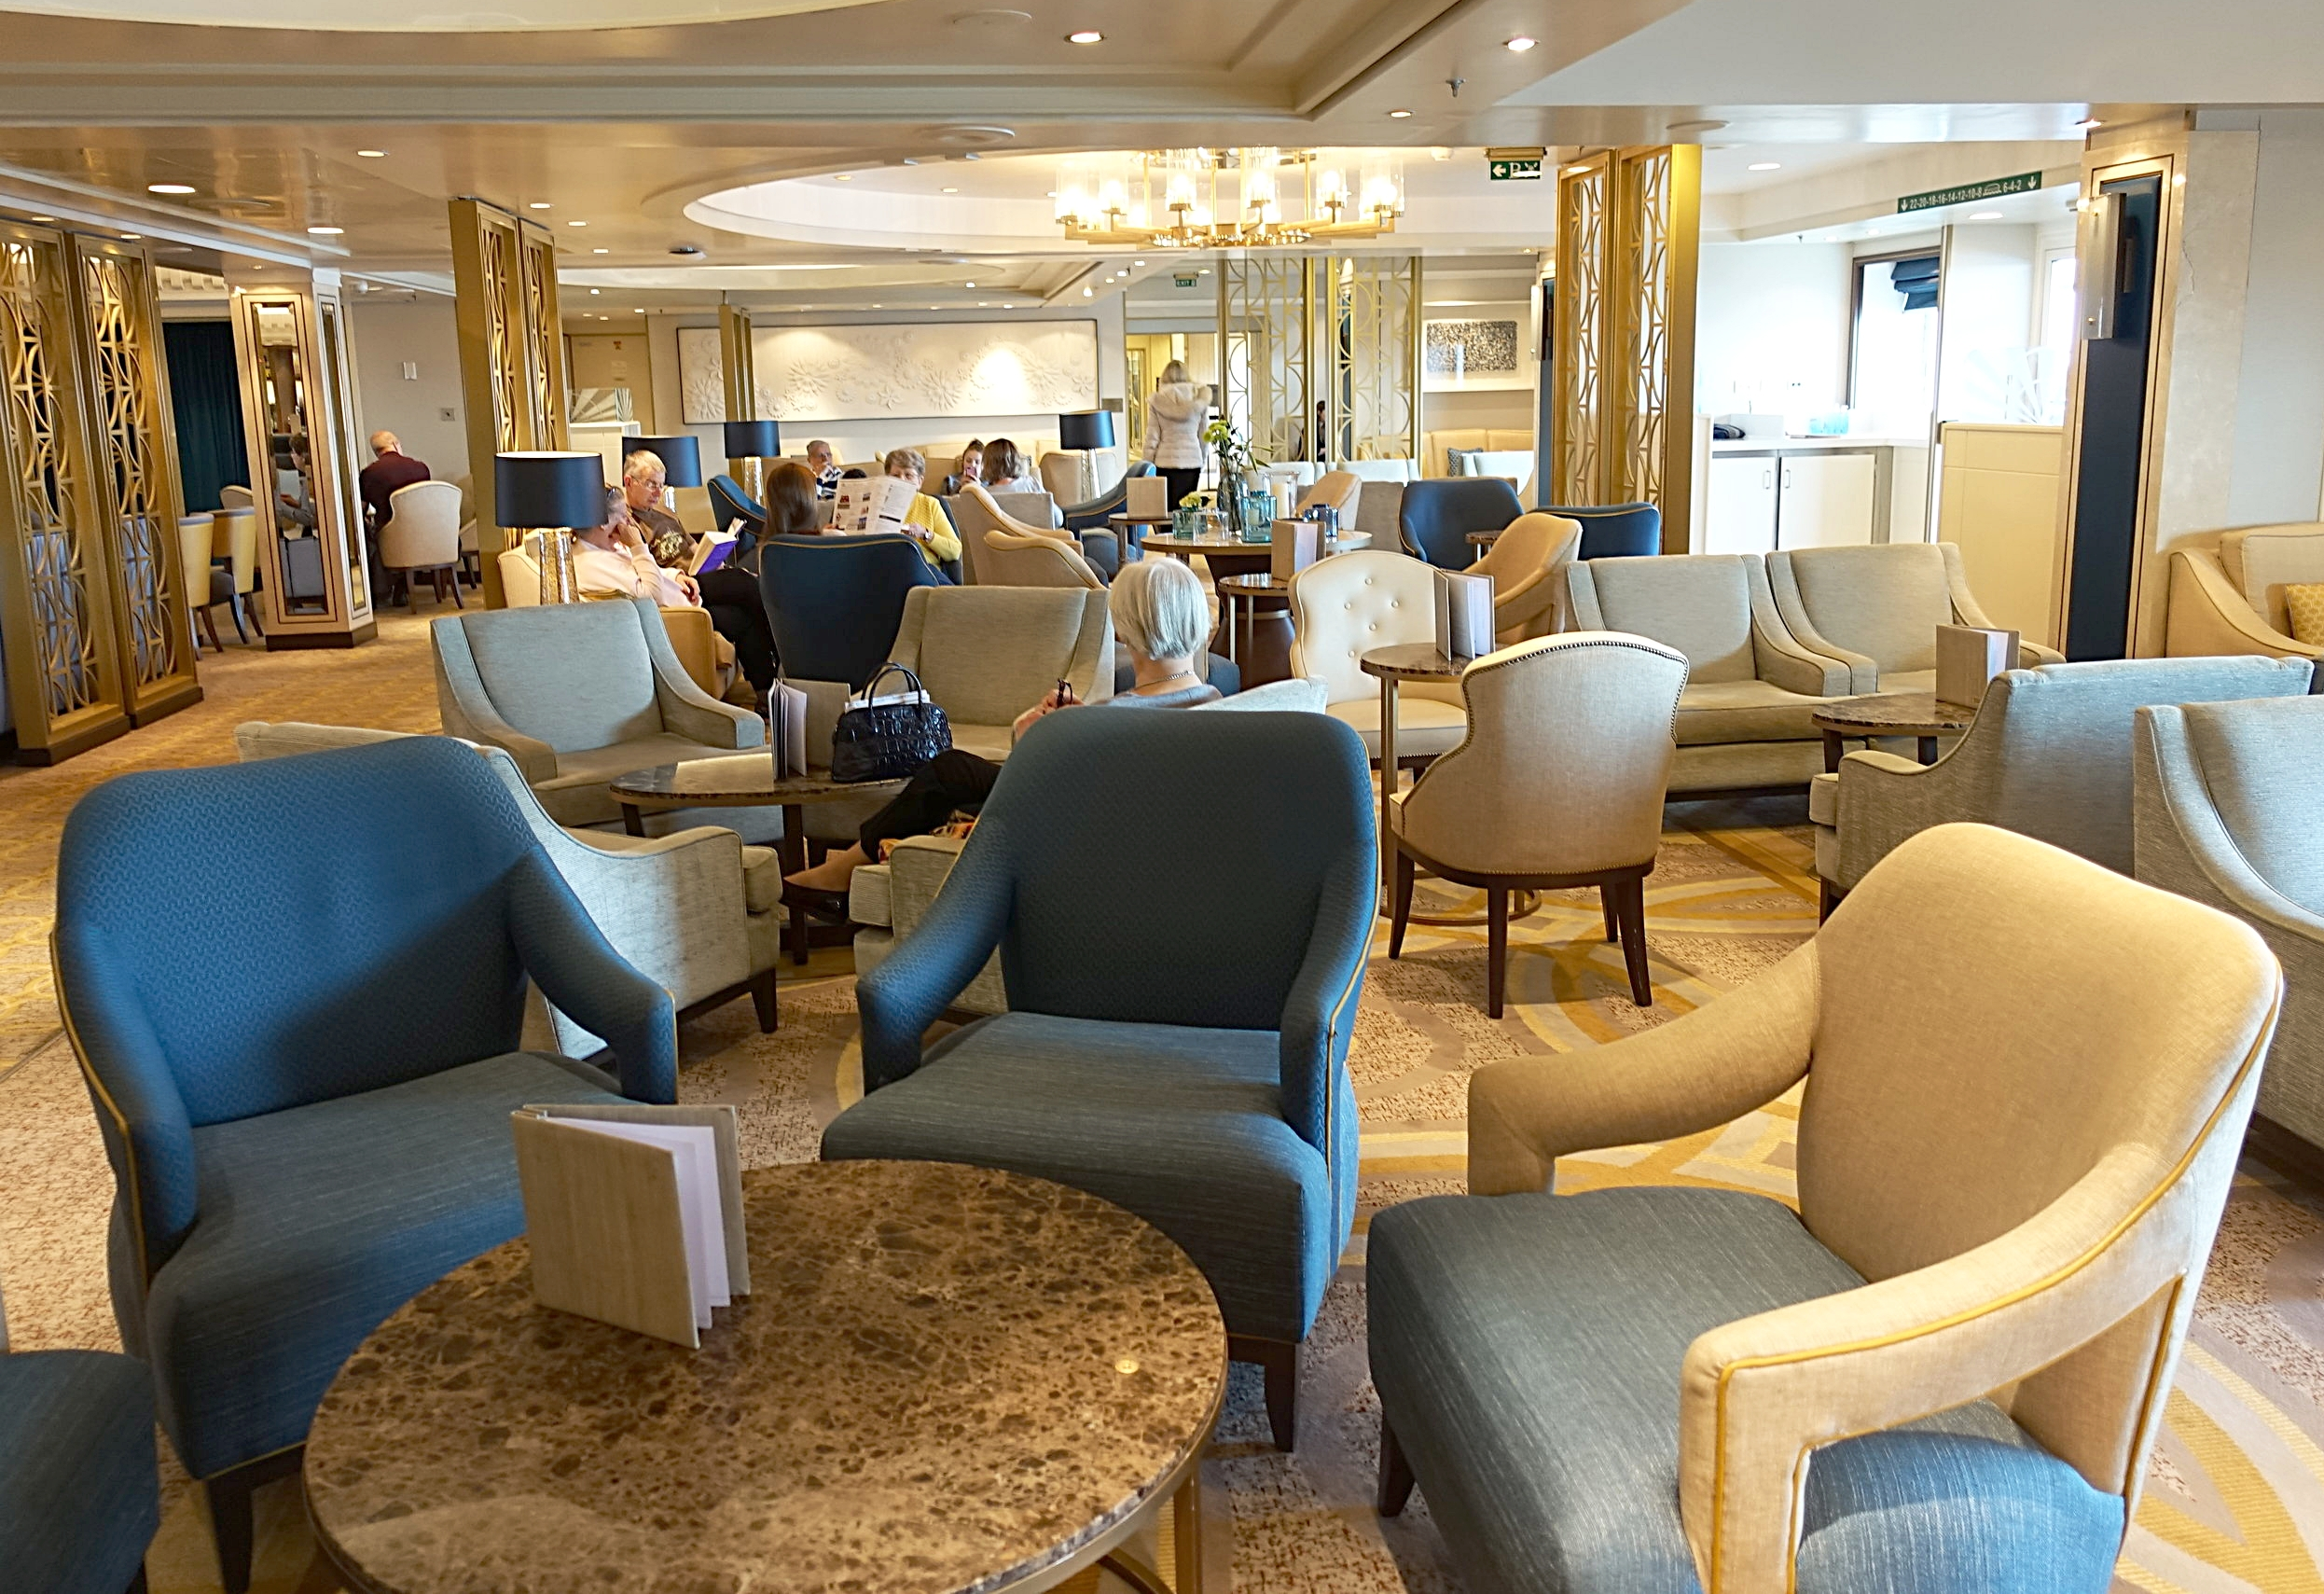 We loved the decor and design style of the Carinthia Lounge.